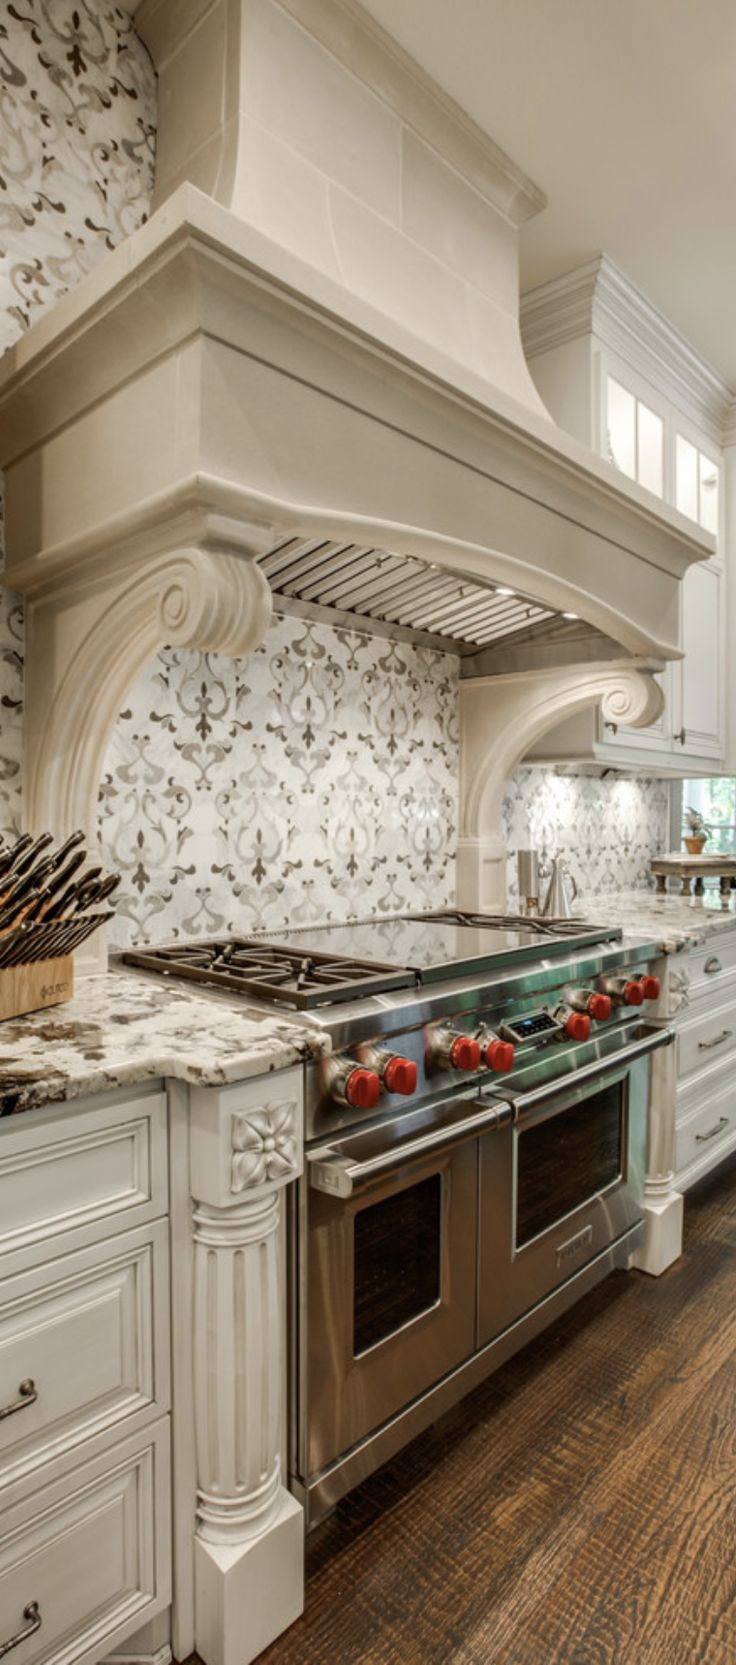 585 best kitchens images on pinterest kitchen ideas kitchen kitchen tile backsplash wolf range gorgeous hood